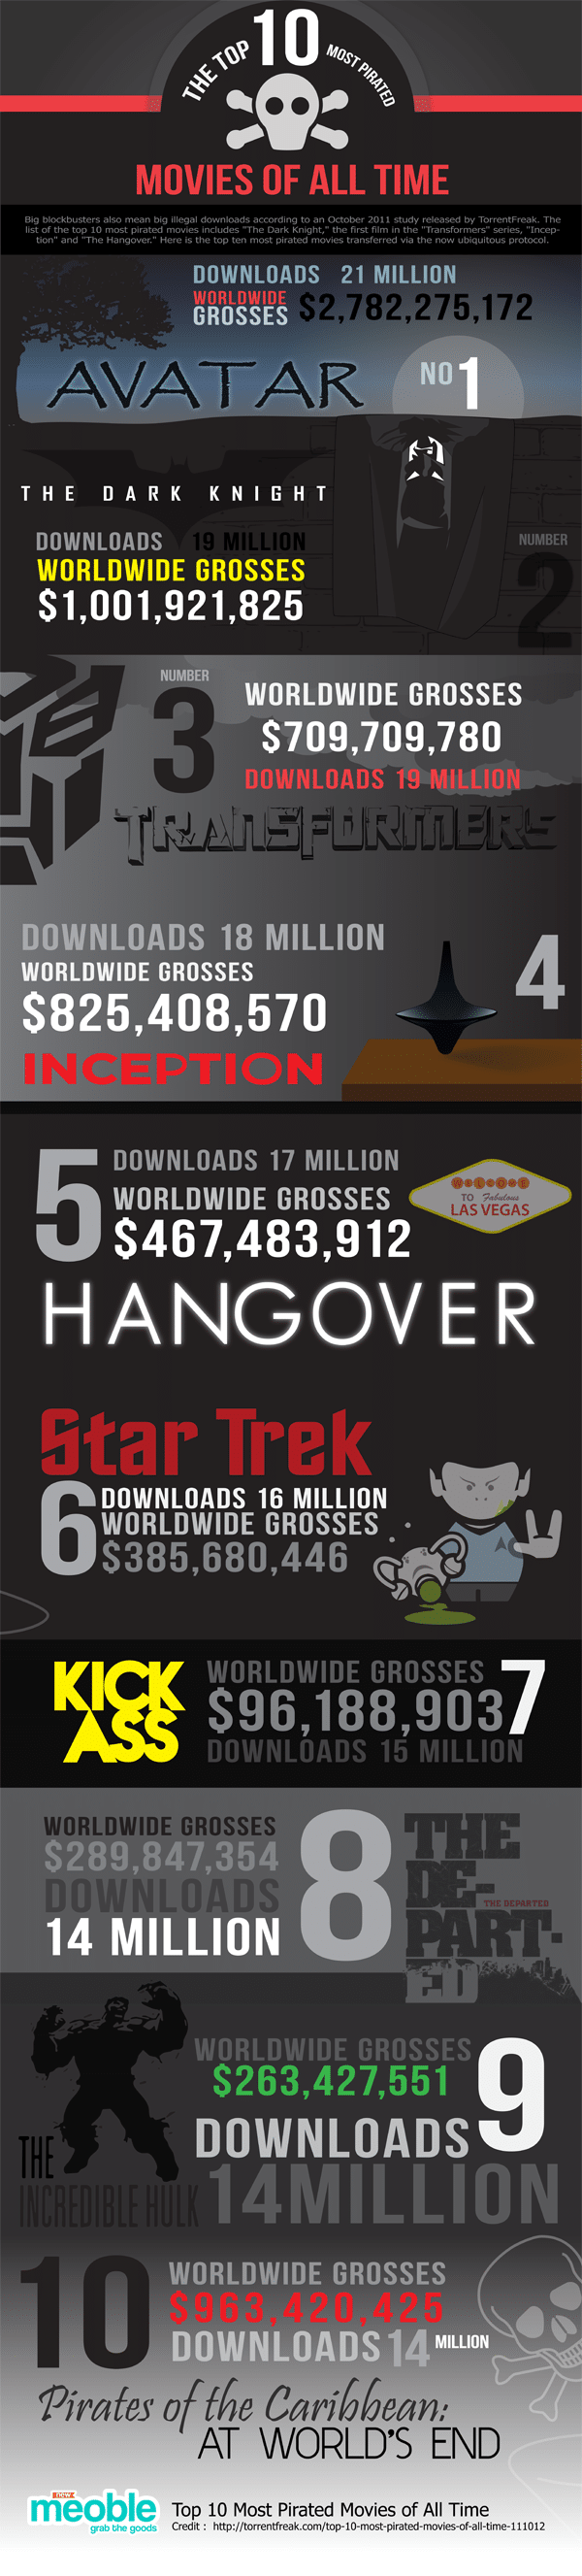 10 Most Pirated Movies Of All Time [Infographic]